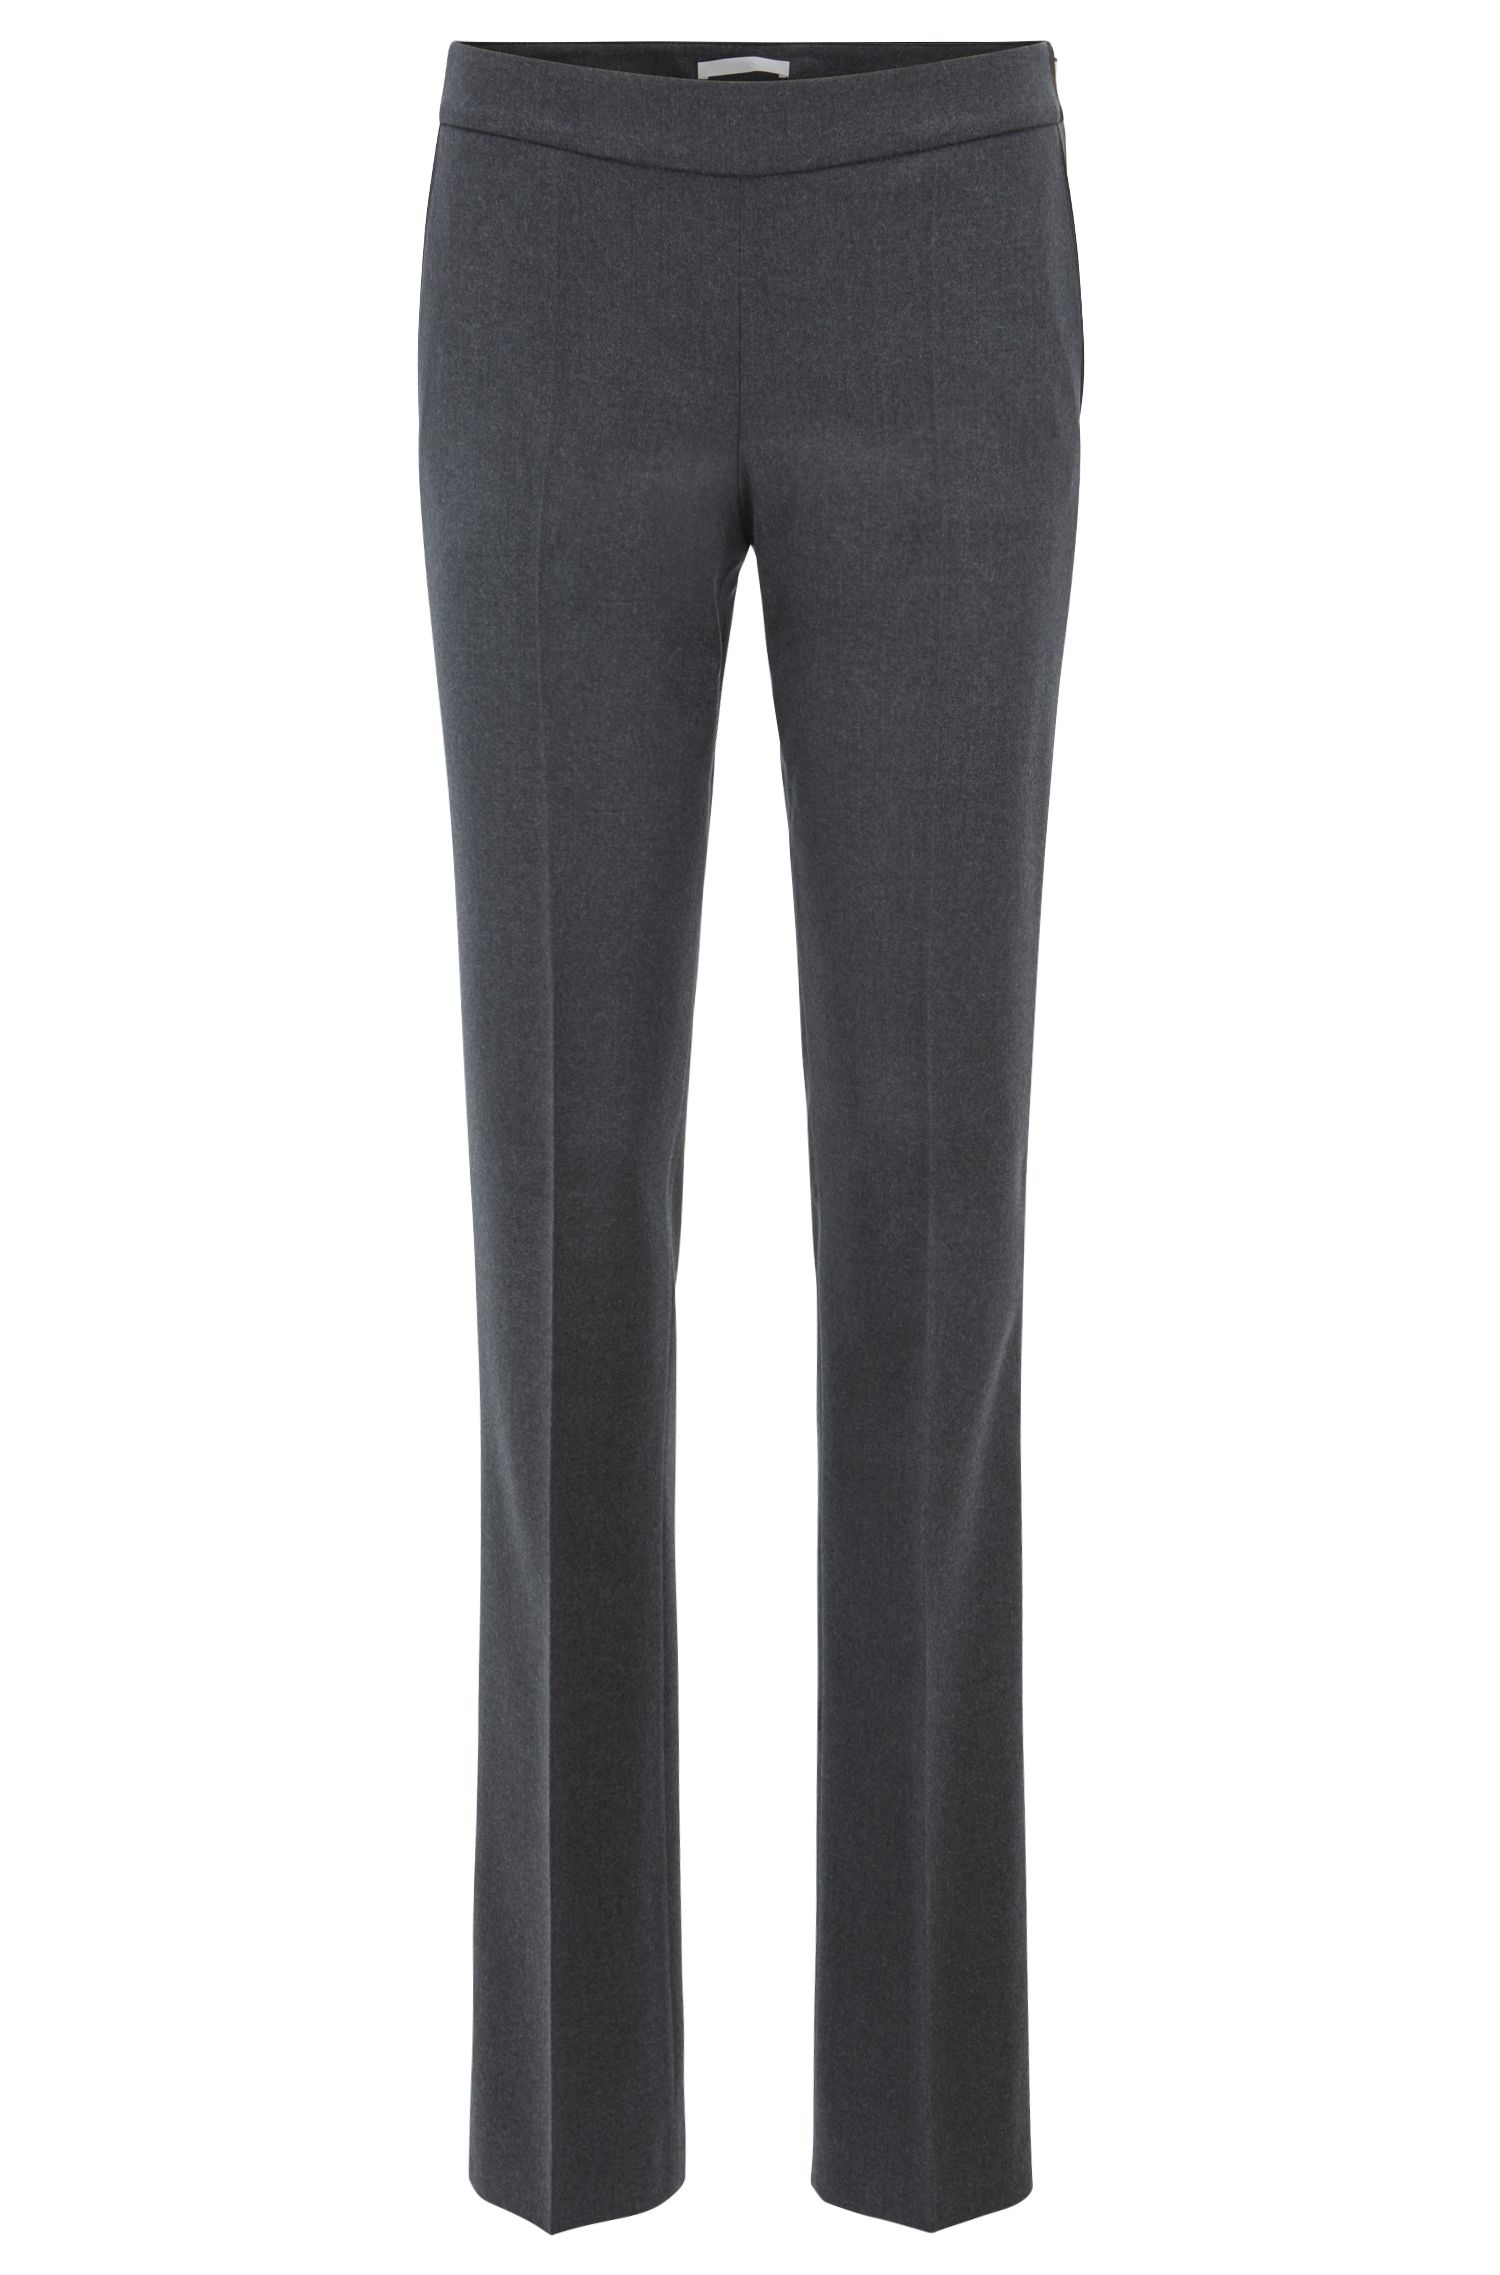 Regular-fit formal pants in melange stretch wool, Charcoal